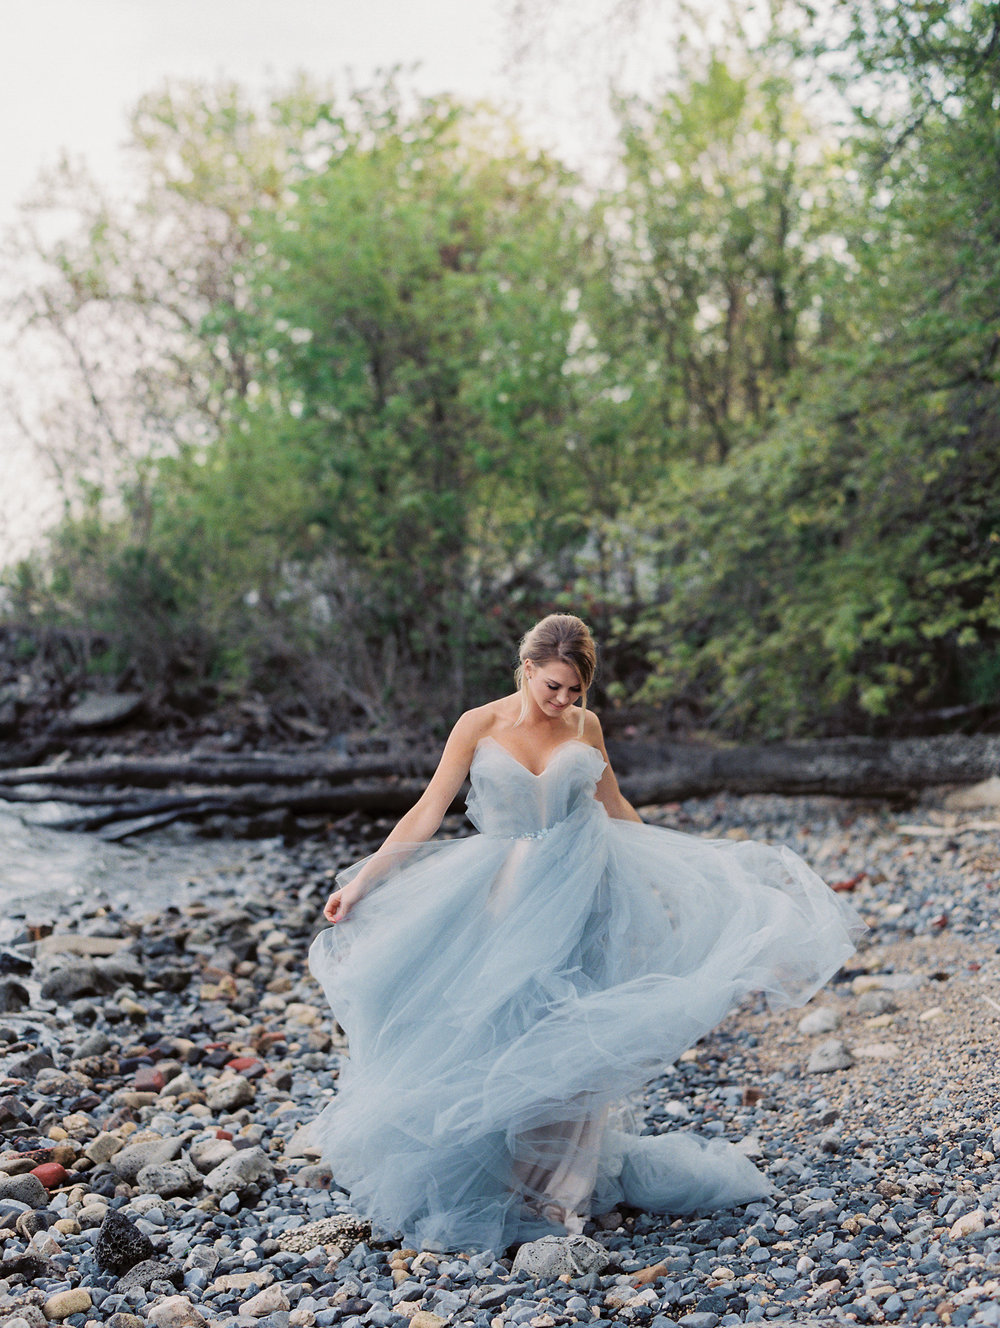 Image by CJK Visuals. The magic of tulle on film.